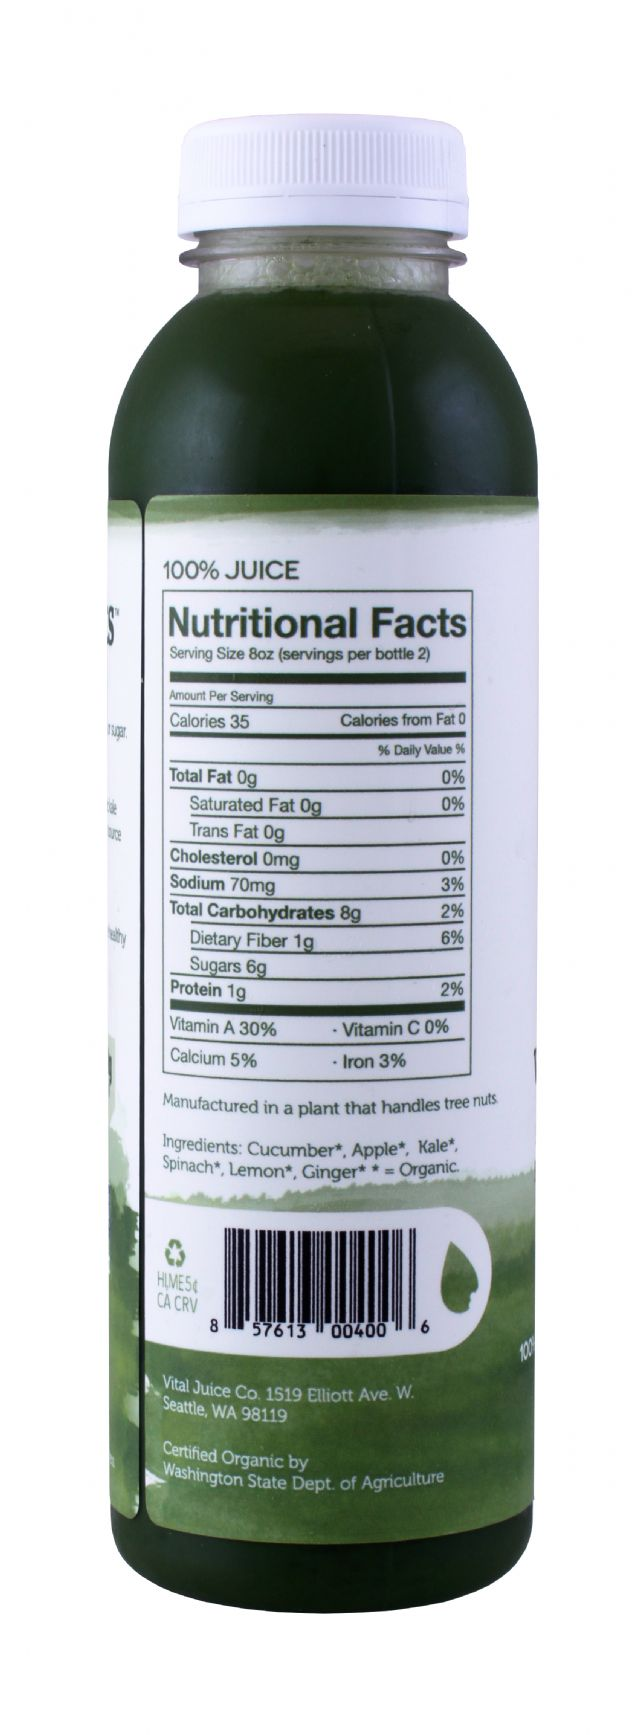 Vital Juice: VitalGreens LG Facts